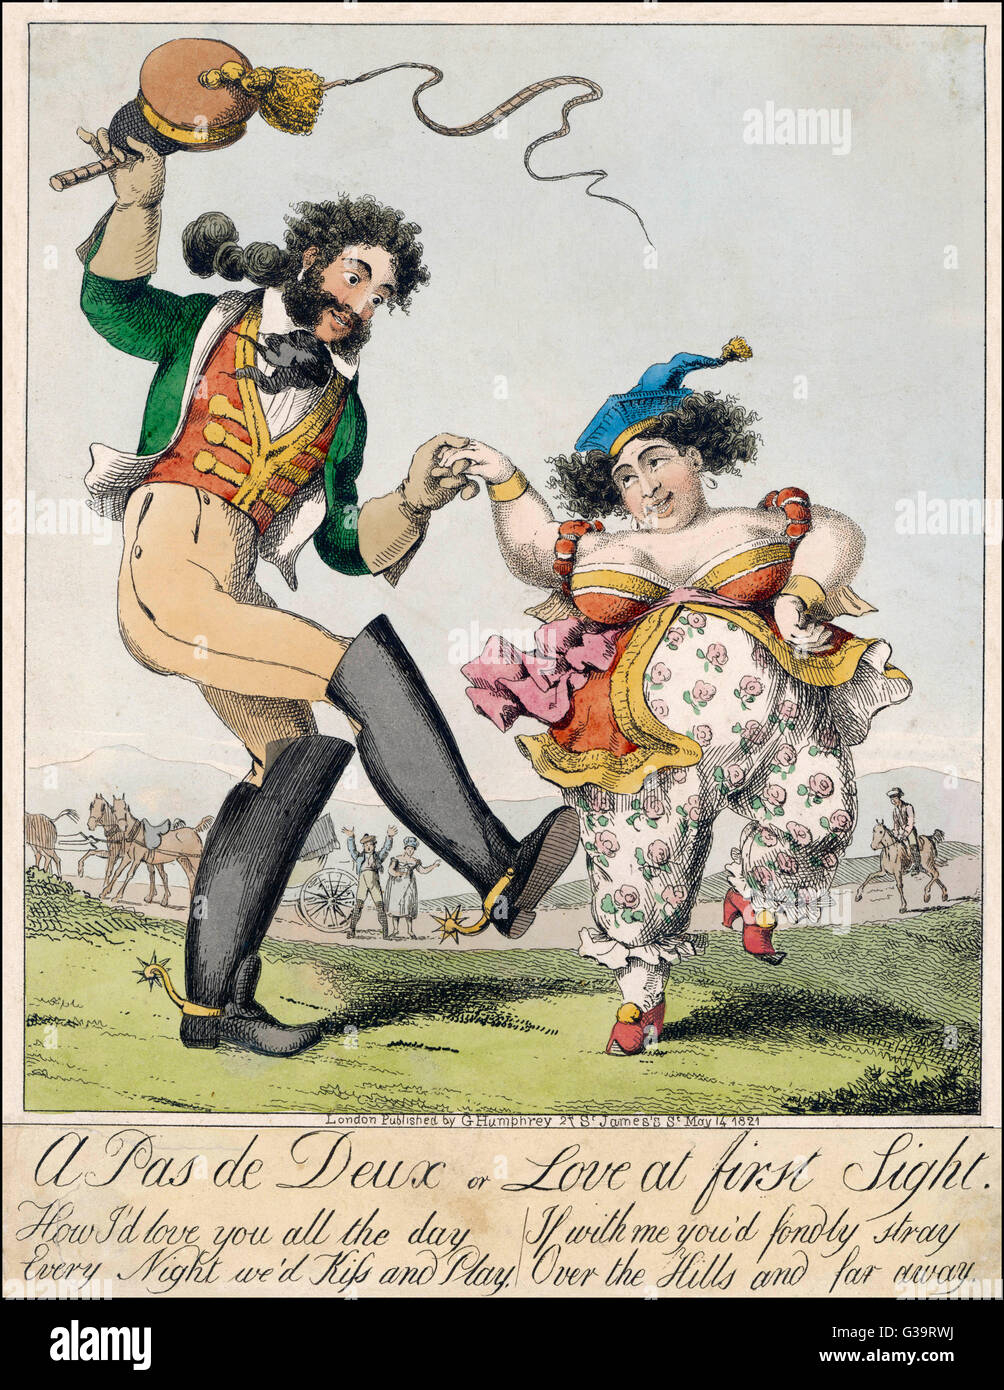 A Pas De Deux Or Love At First Sight Satire On Caroline Of Stock